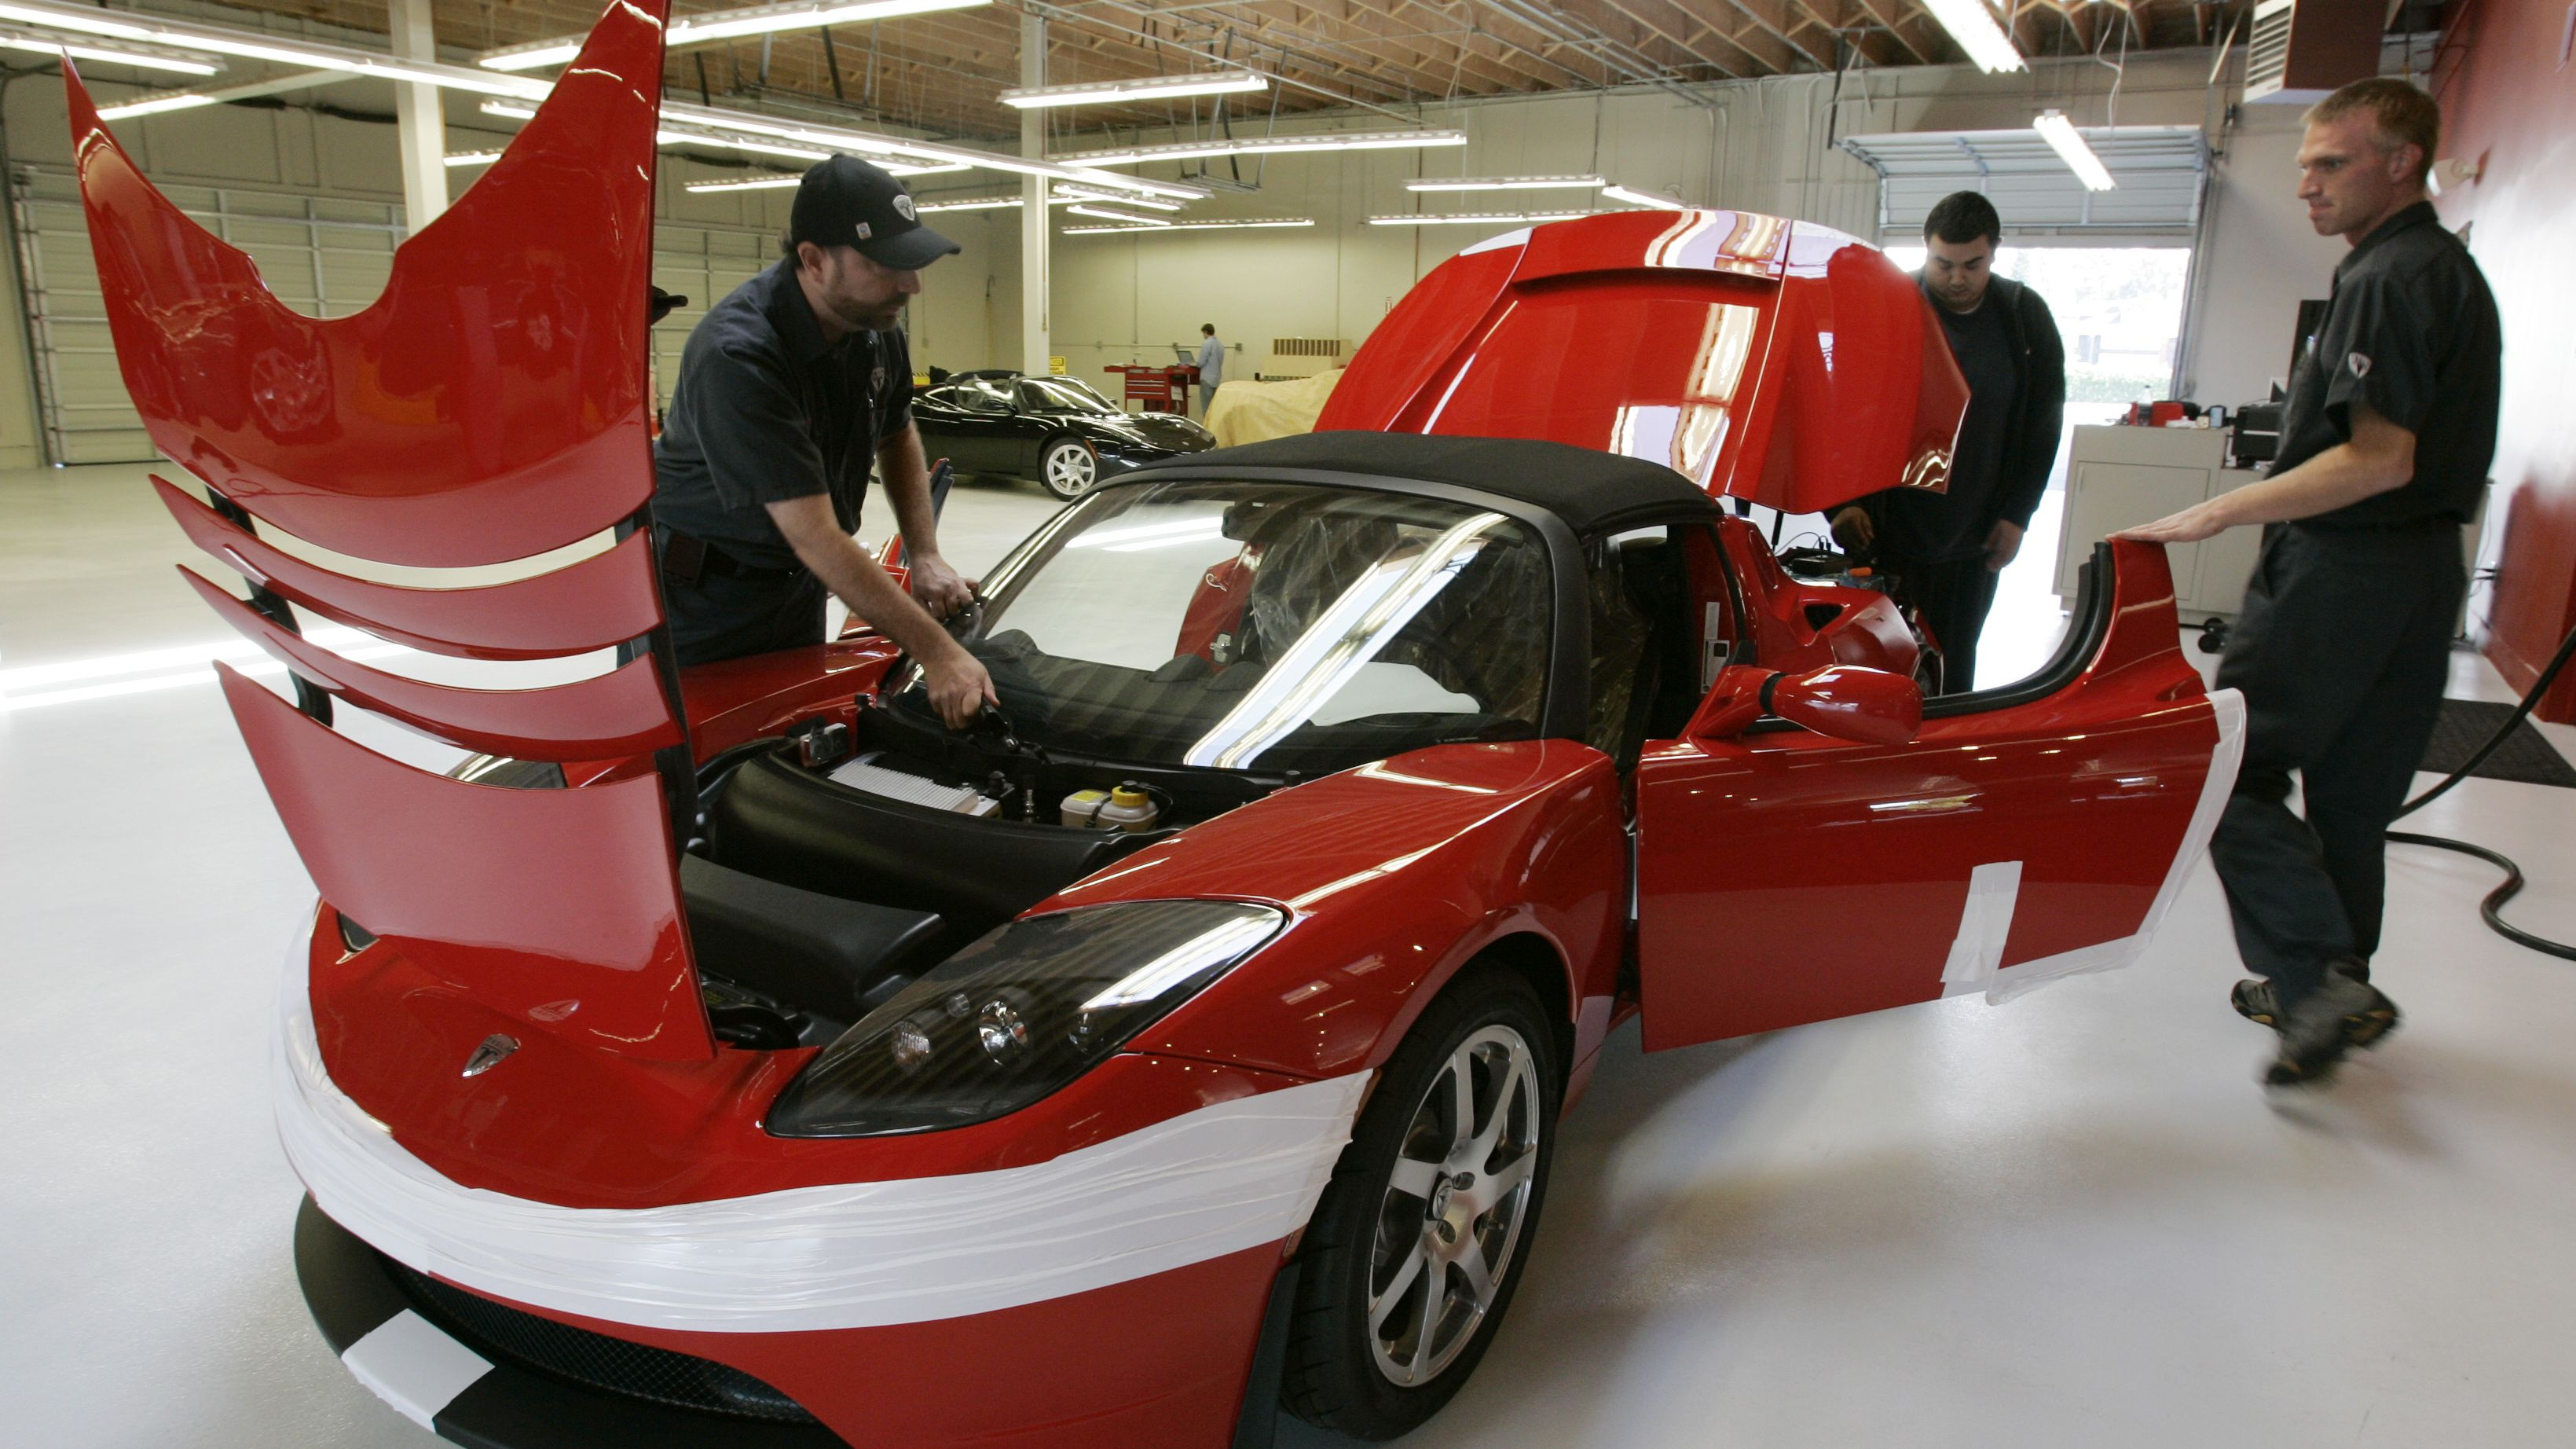 Tesla workers assembly a Tesla Roadster at their showroom in Menlo Park, Calif., Tuesday, Sept. 16, 2008. Tesla expects final approval of a deal with the city of San Jose, Calif., for a plant to build the Model S, an all-electric sedan. Tesla's cars run on a massive lithium-ion battery pack that can be recharged by plugging an adapter cord into a wall socket. (AP Photo/Paul Sakuma)